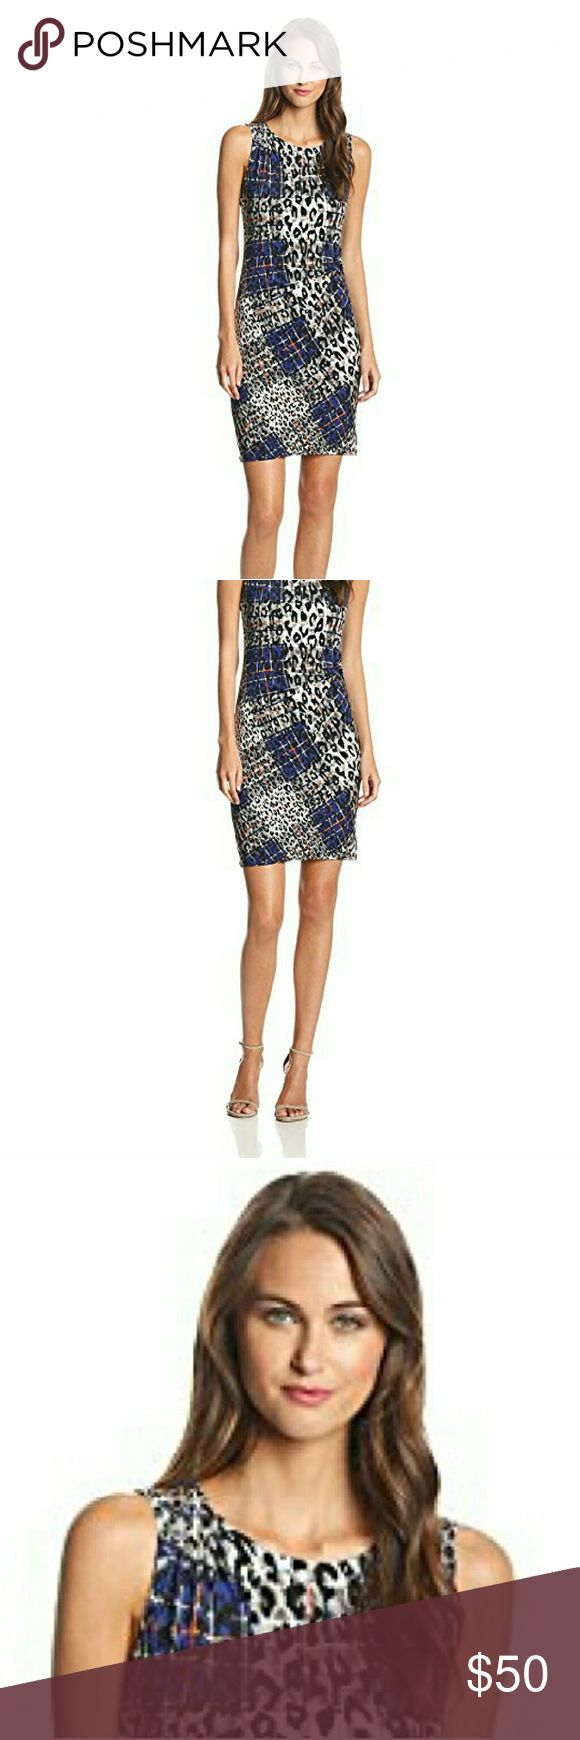 Nine West Animal Plaid Print Side Knot Dress This modern fusion  of animal print with the prim and proper Scottish plaid put a new spin on an old idea.  This daring, eye catching look is great for your next night out.  Be a proper lady ... with a wild streak. Nine West Dresses